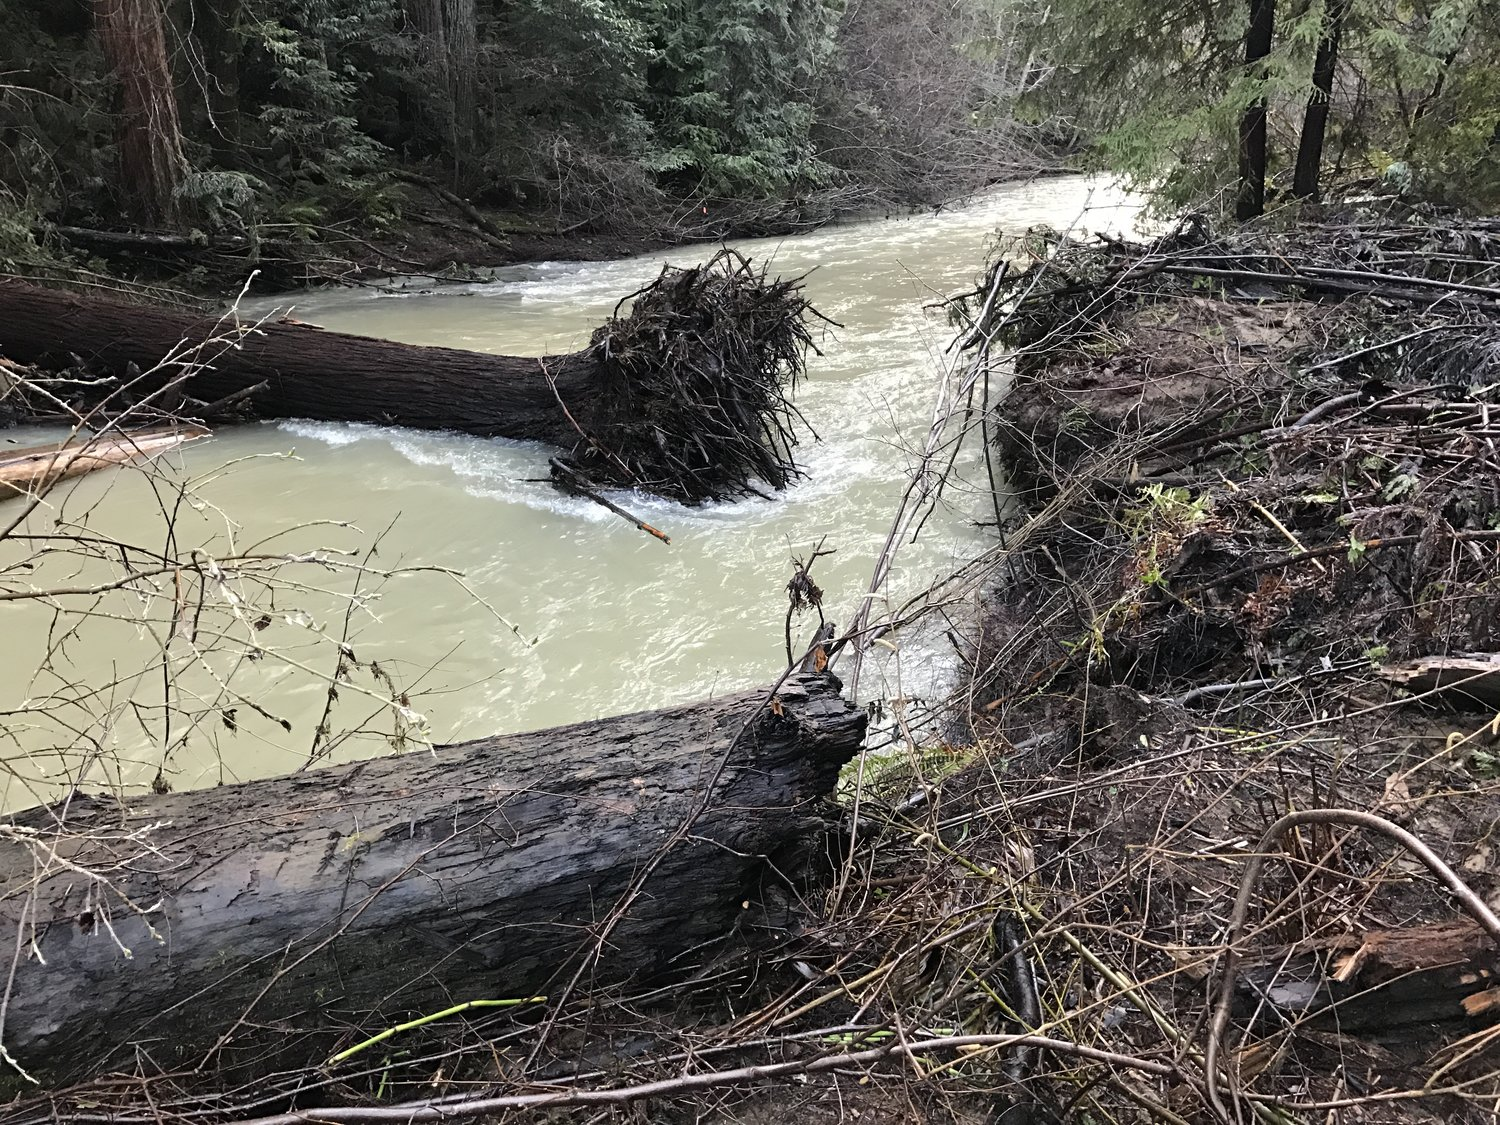 Improved salmon and steelhead habitat by adding large wood structure to streams.Eleven projects; 14.9 mile of stream habitat improved; 918 pieces of wood installed instream.Watersheds: Ten Mile River, Noyo River, Navarro River, Big River, Garcia River, Eel River, Albion River -